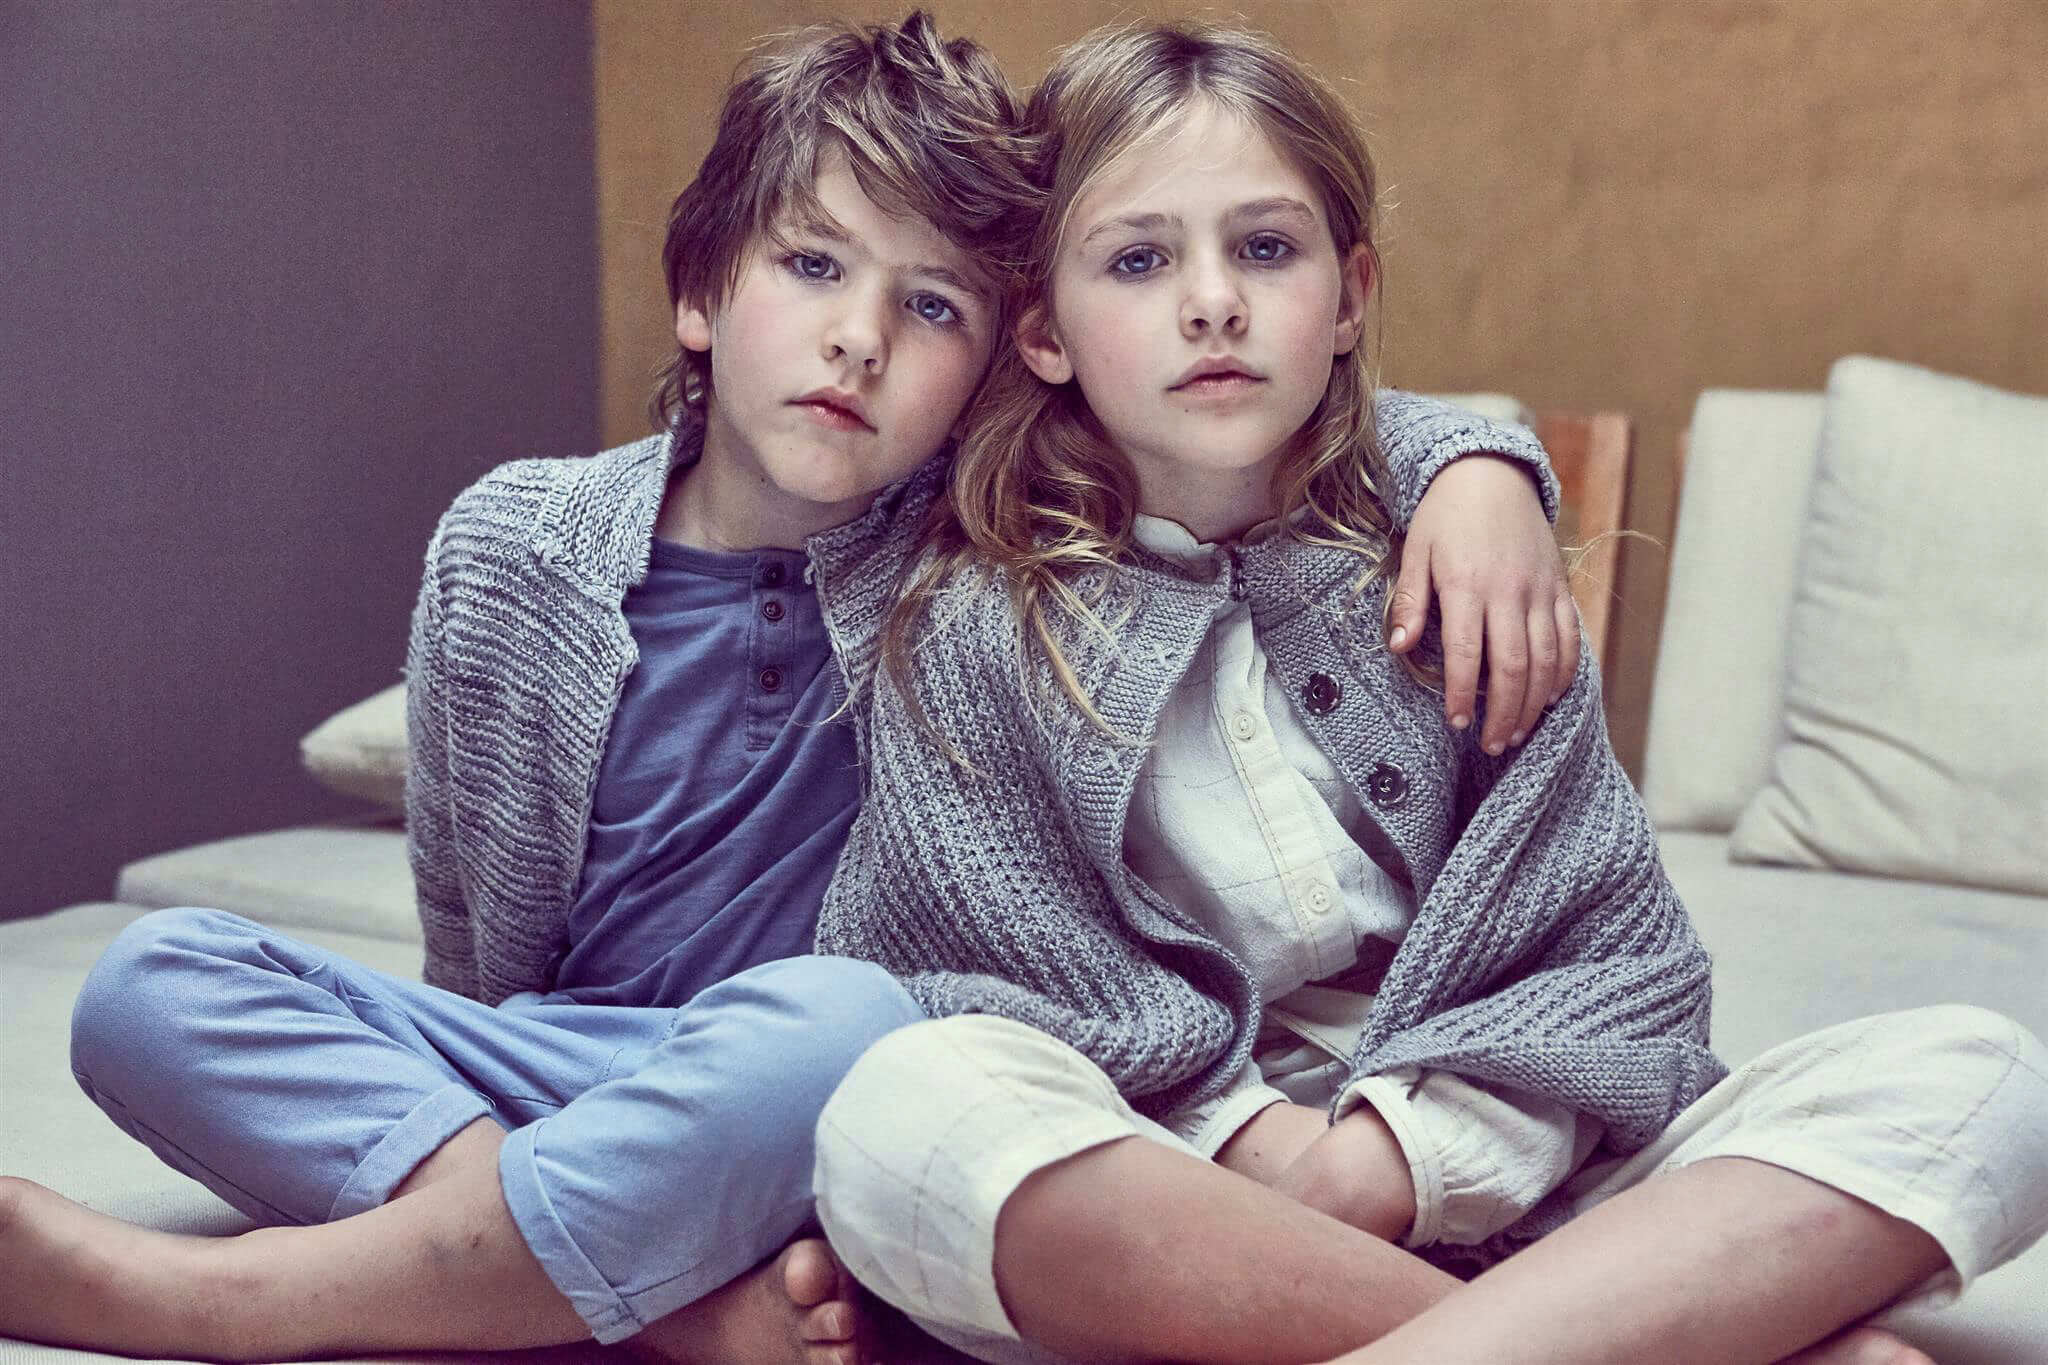 Child Fashion Photography | The Siblings | VIKA POBEDA